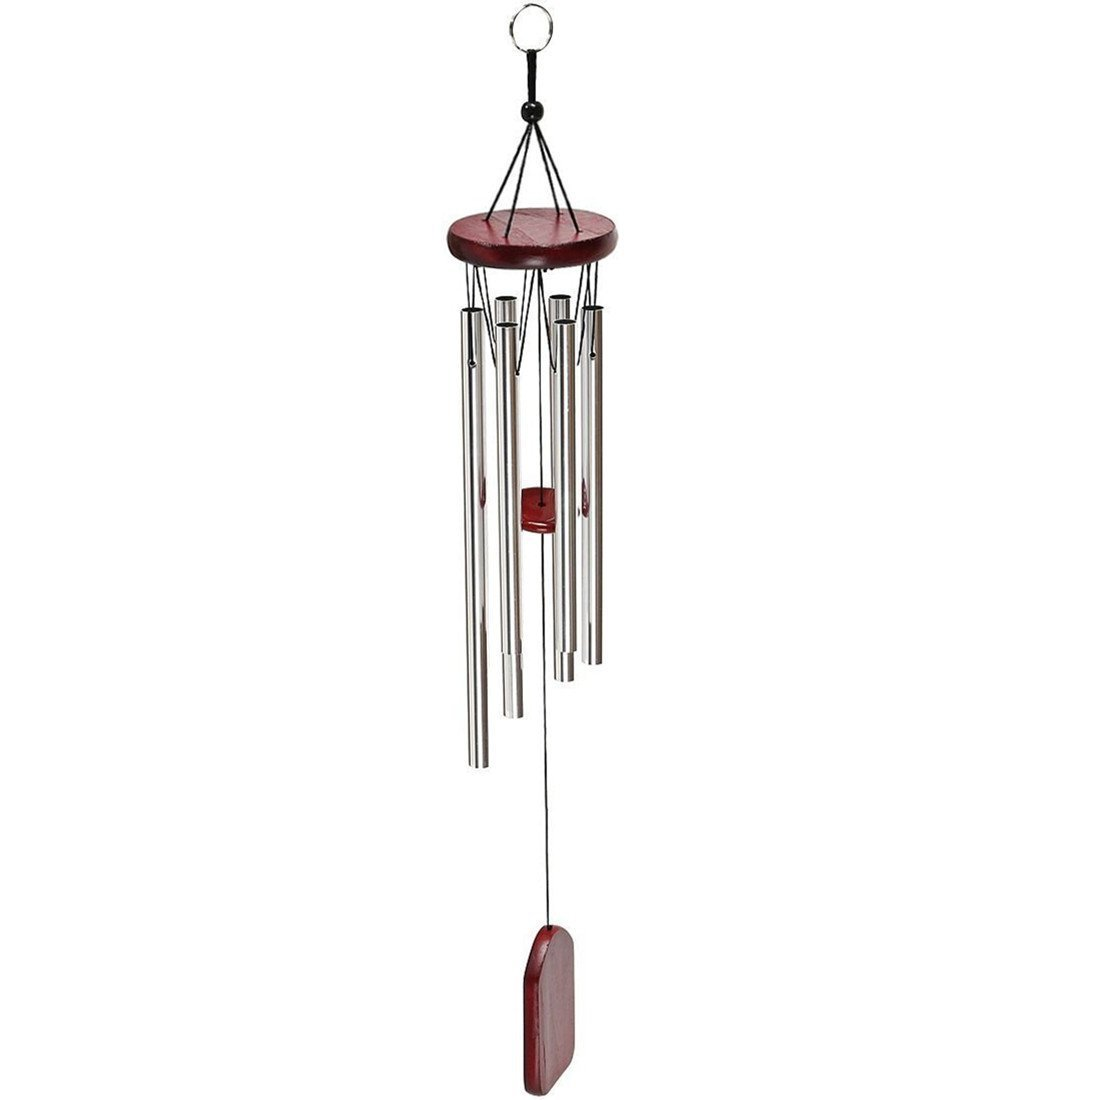 Wind Chime, Windchime Amazing Grace Wind Chimes Bells 6 Metal Tubes Outdoor for Garden, Yard,Patio and Home Decor Gruory